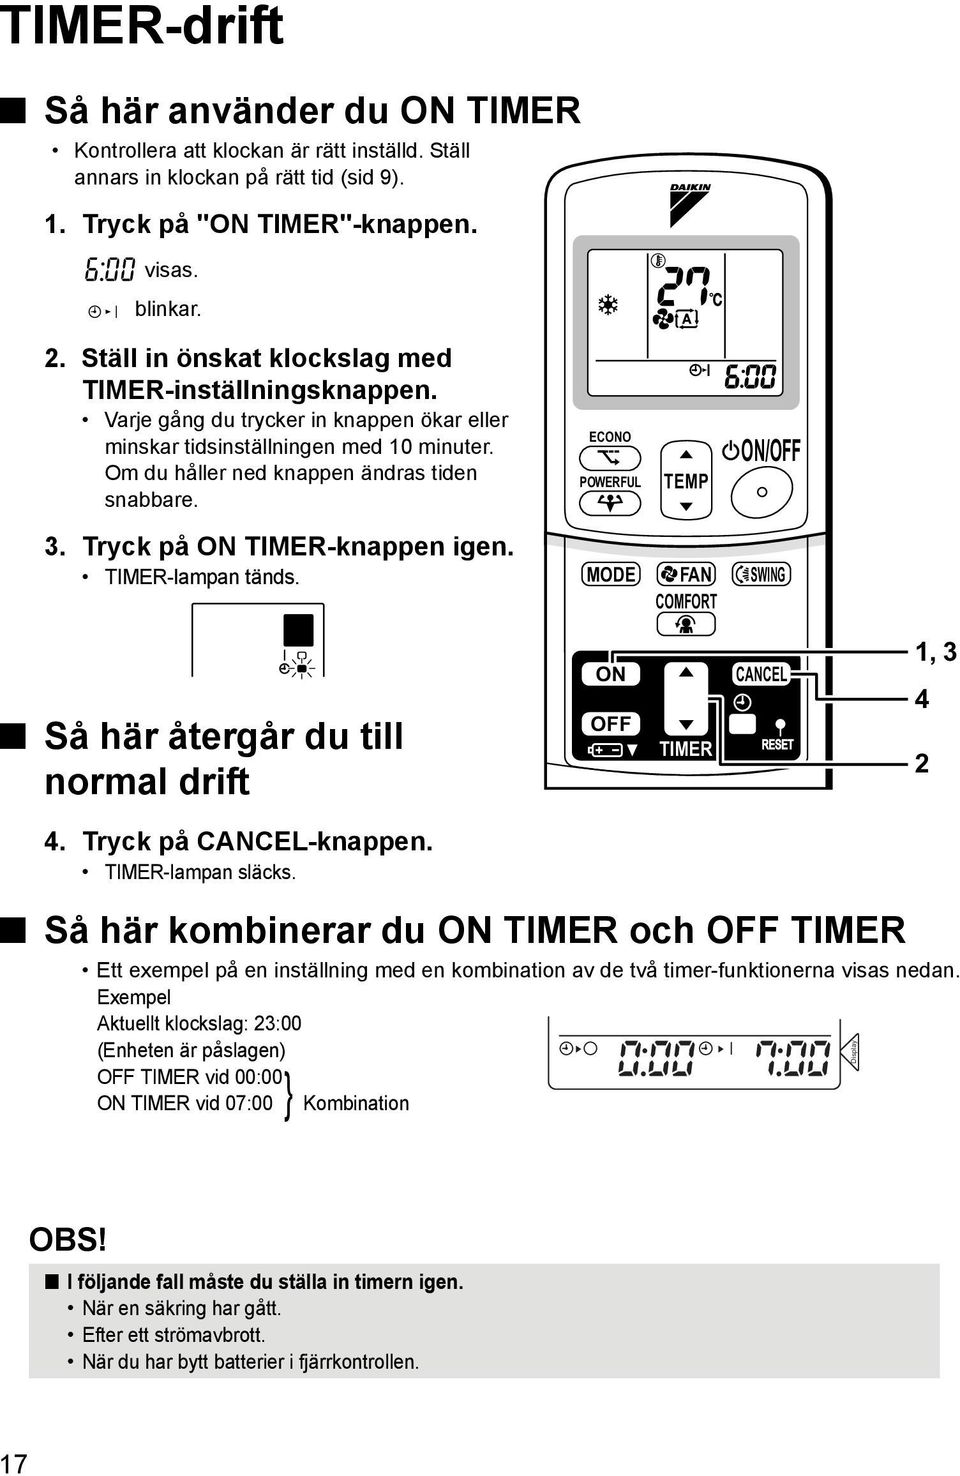 ECONO POWERFUL TEMP ON/OFF 3. Tryck på ON TIMER-knappen igen. TIMER-lampan tänds. MODE FAN SWING COMFORT Så här återgår du till normal drift ON OFF TIMER CANCEL 1, 3 4 2 4. Tryck på CANCEL-knappen.